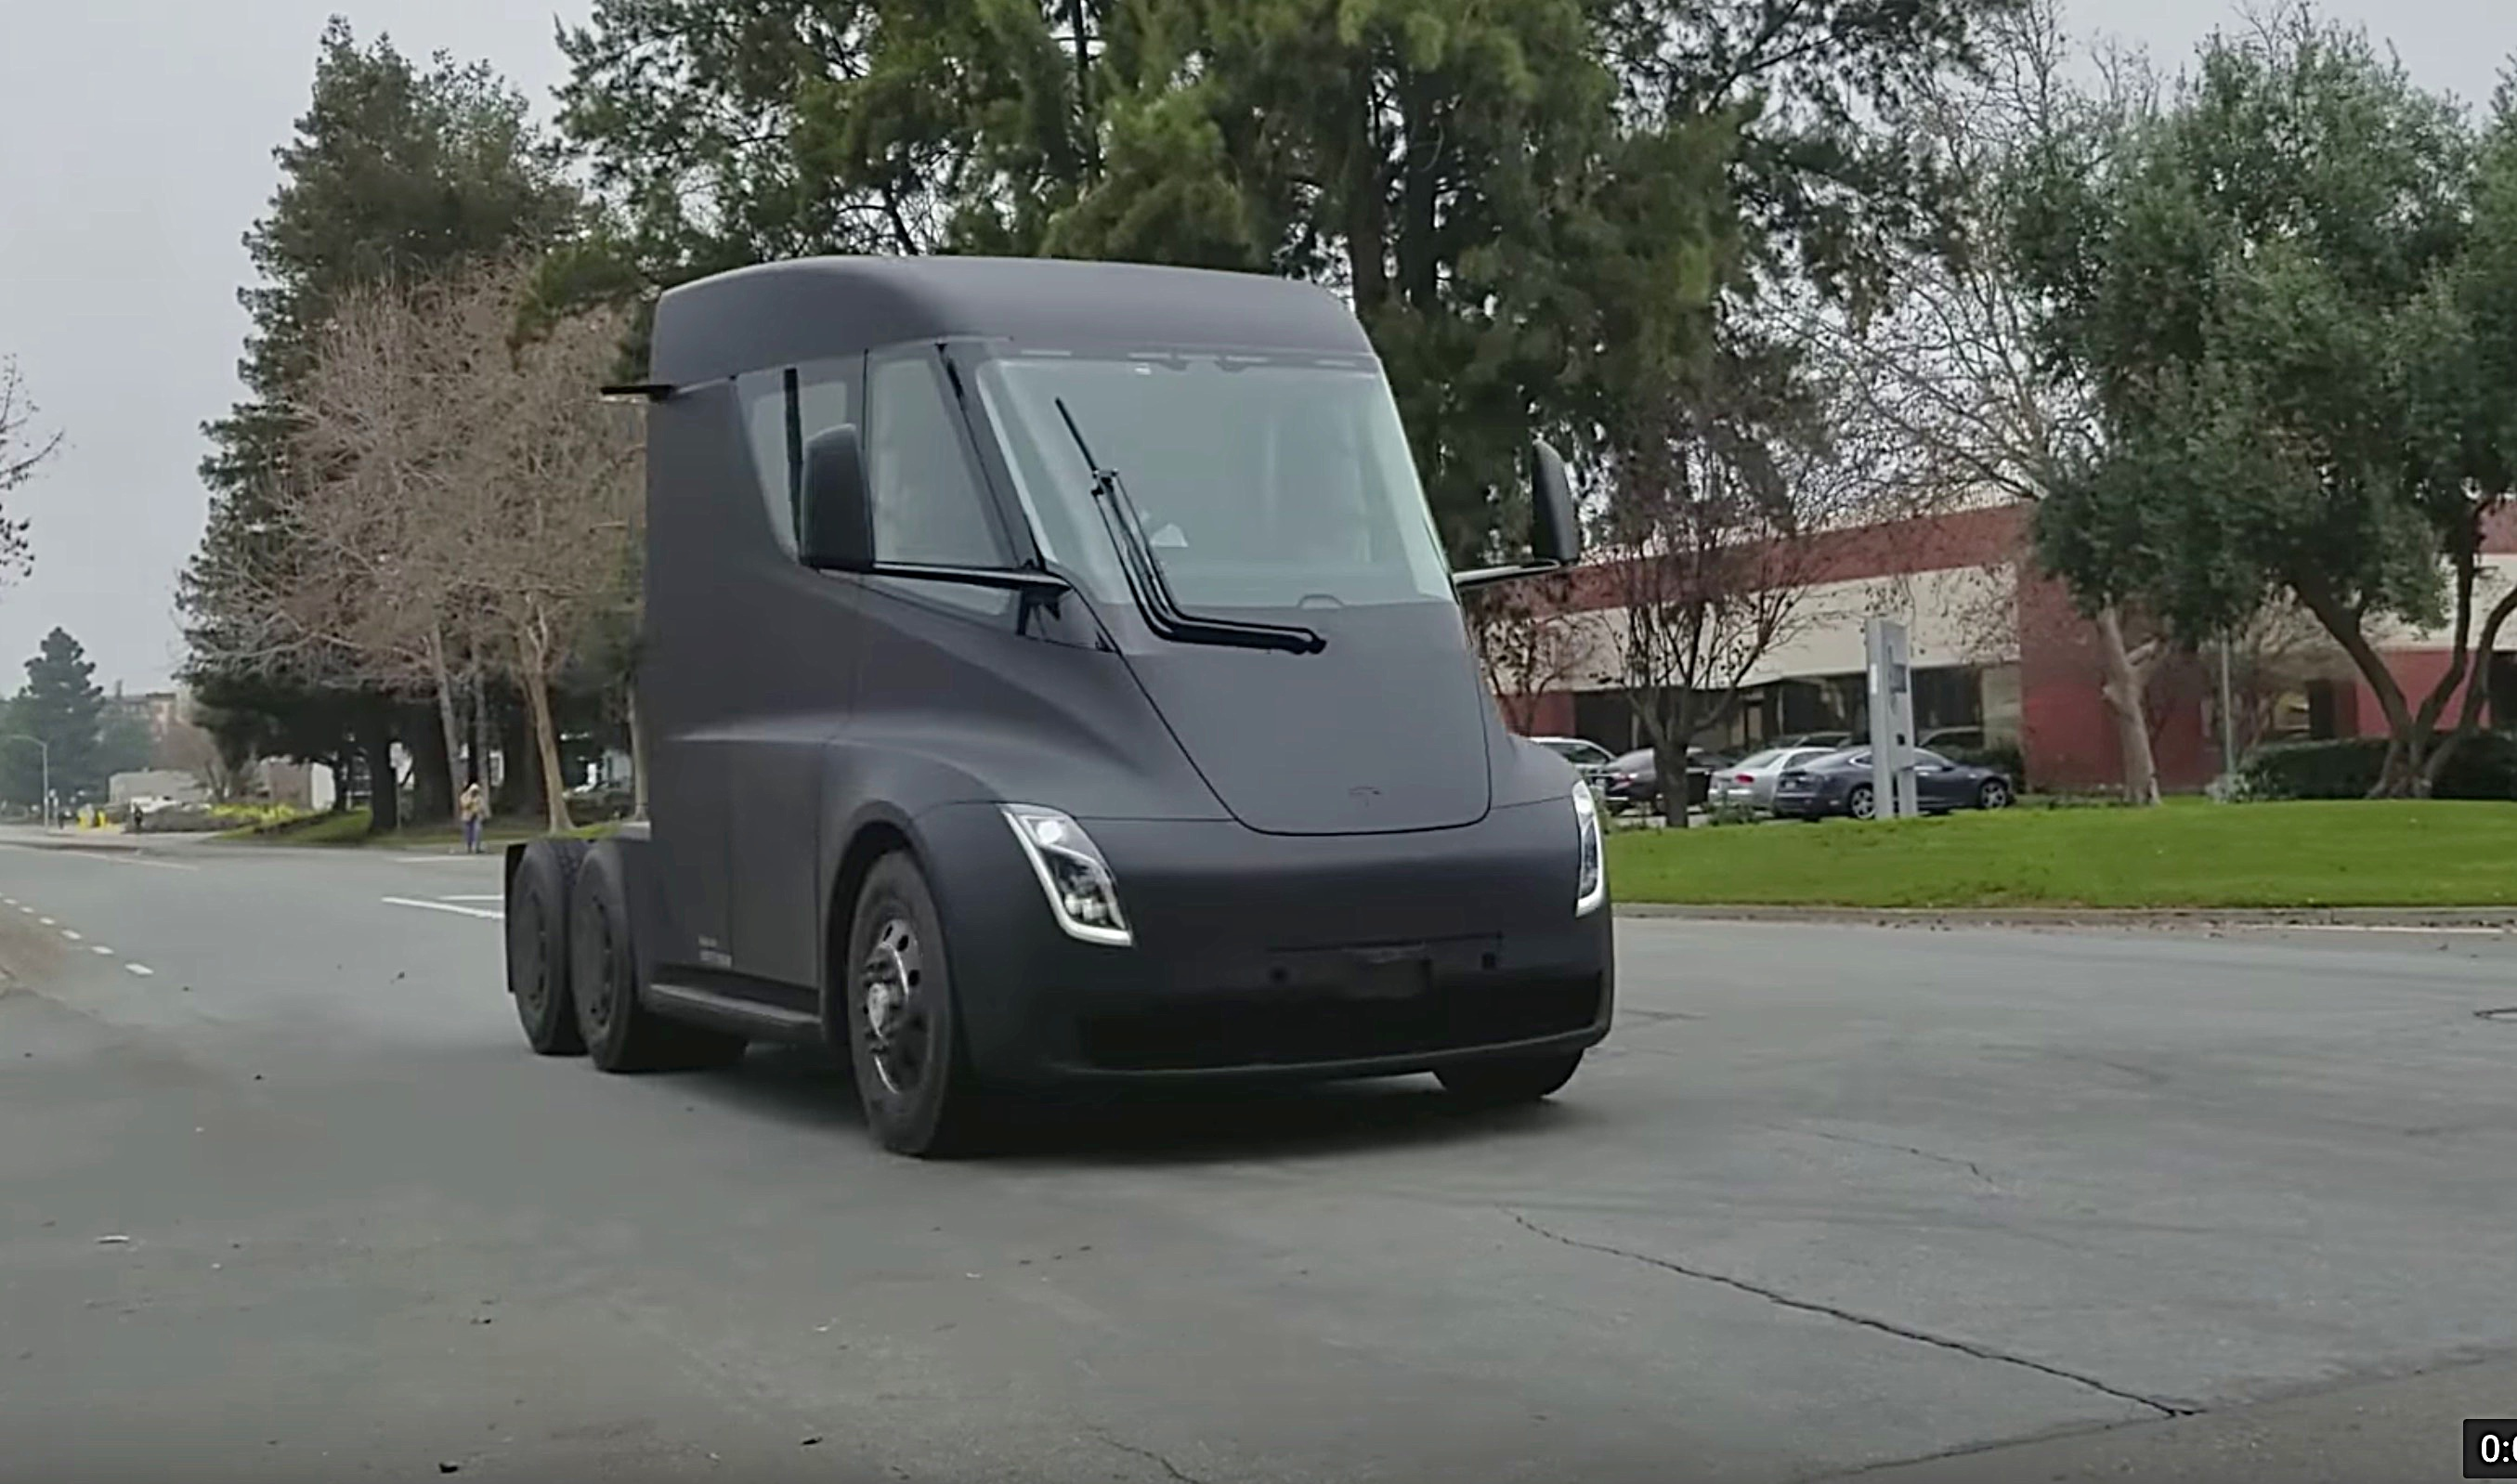 Someone spotted a Tesla Semi on a public road